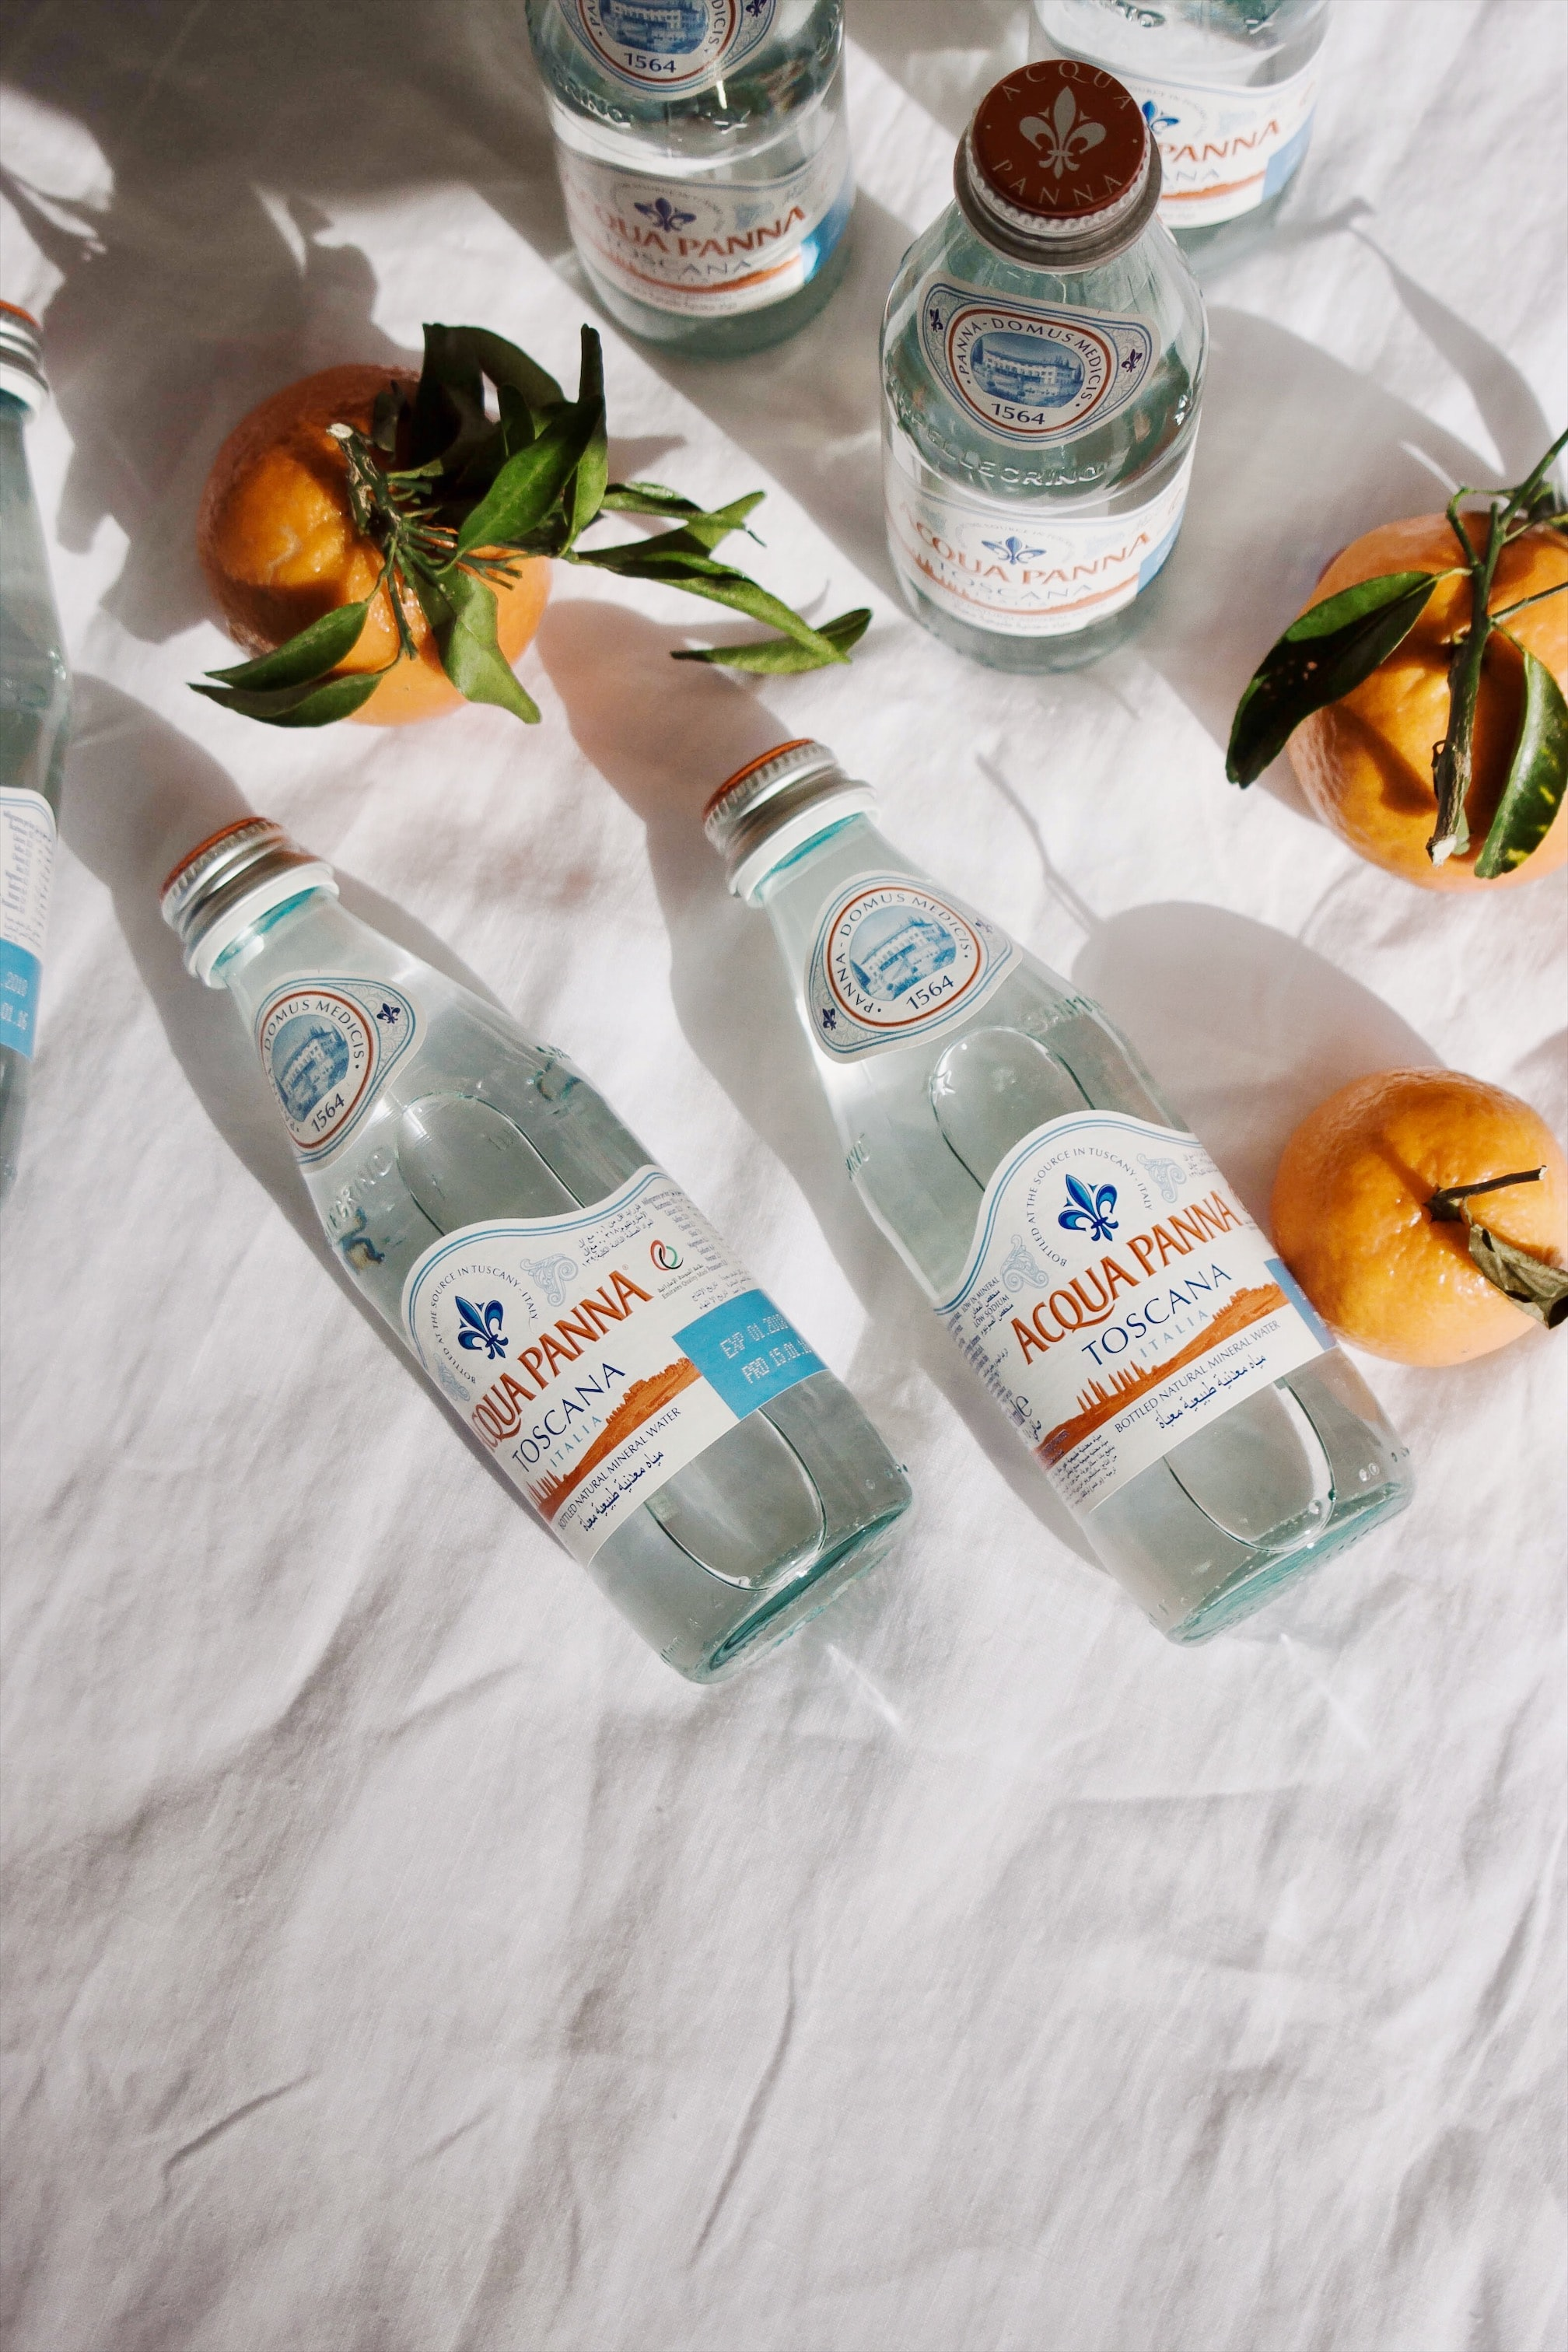 two Acqua Panna bottles beside orange fruits